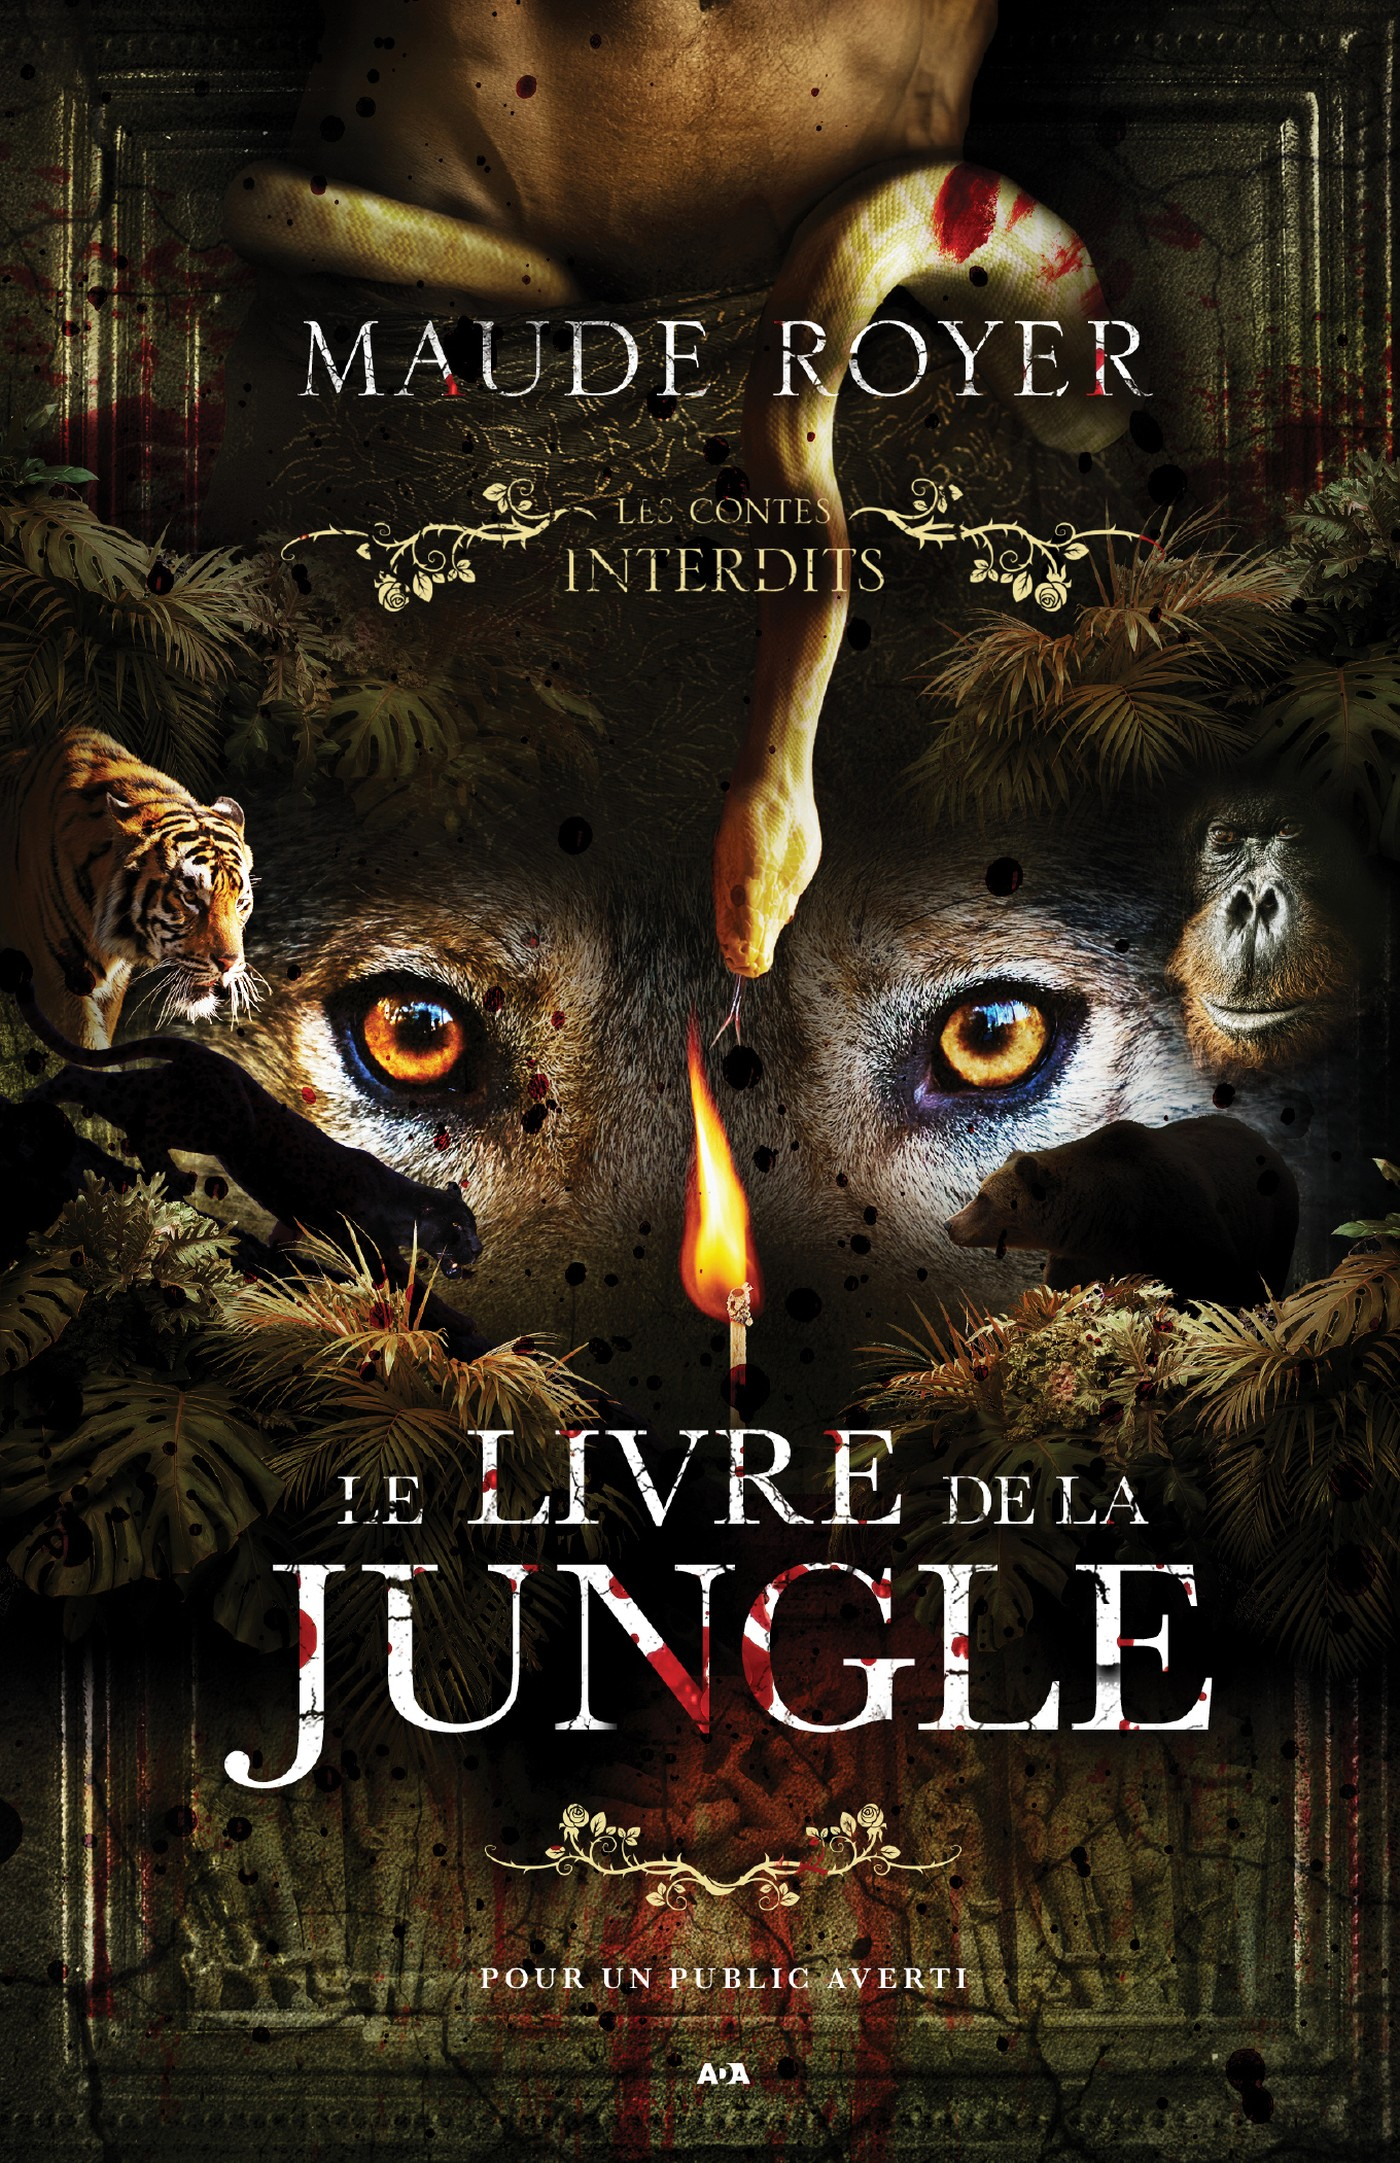 Le livre de la jungle - Maude Royer